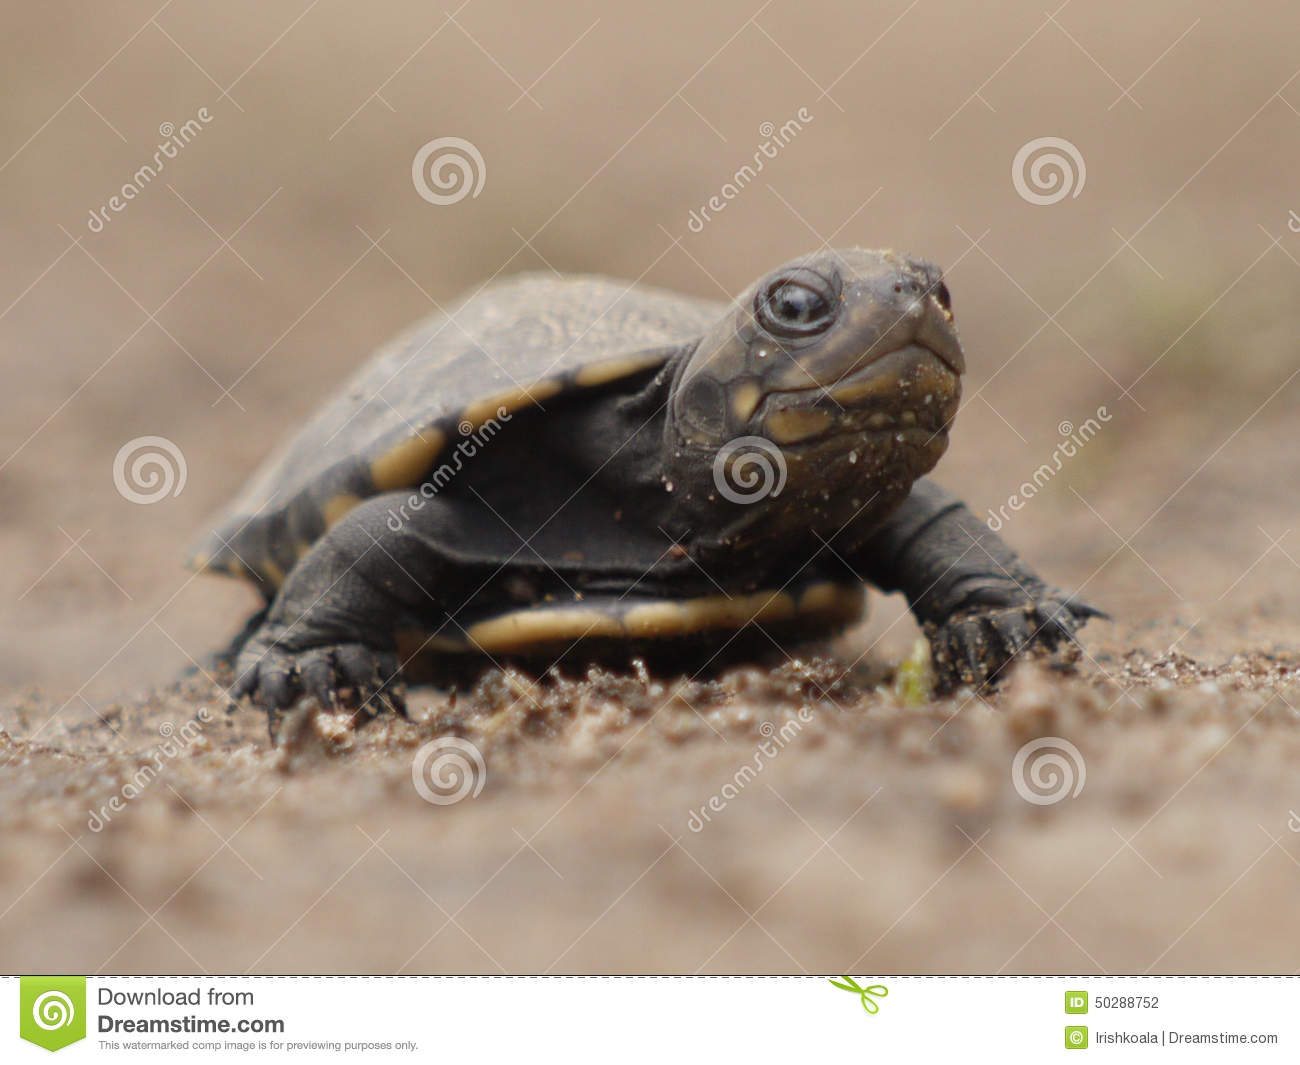 African Helmeted Turtle clipart #7, Download drawings